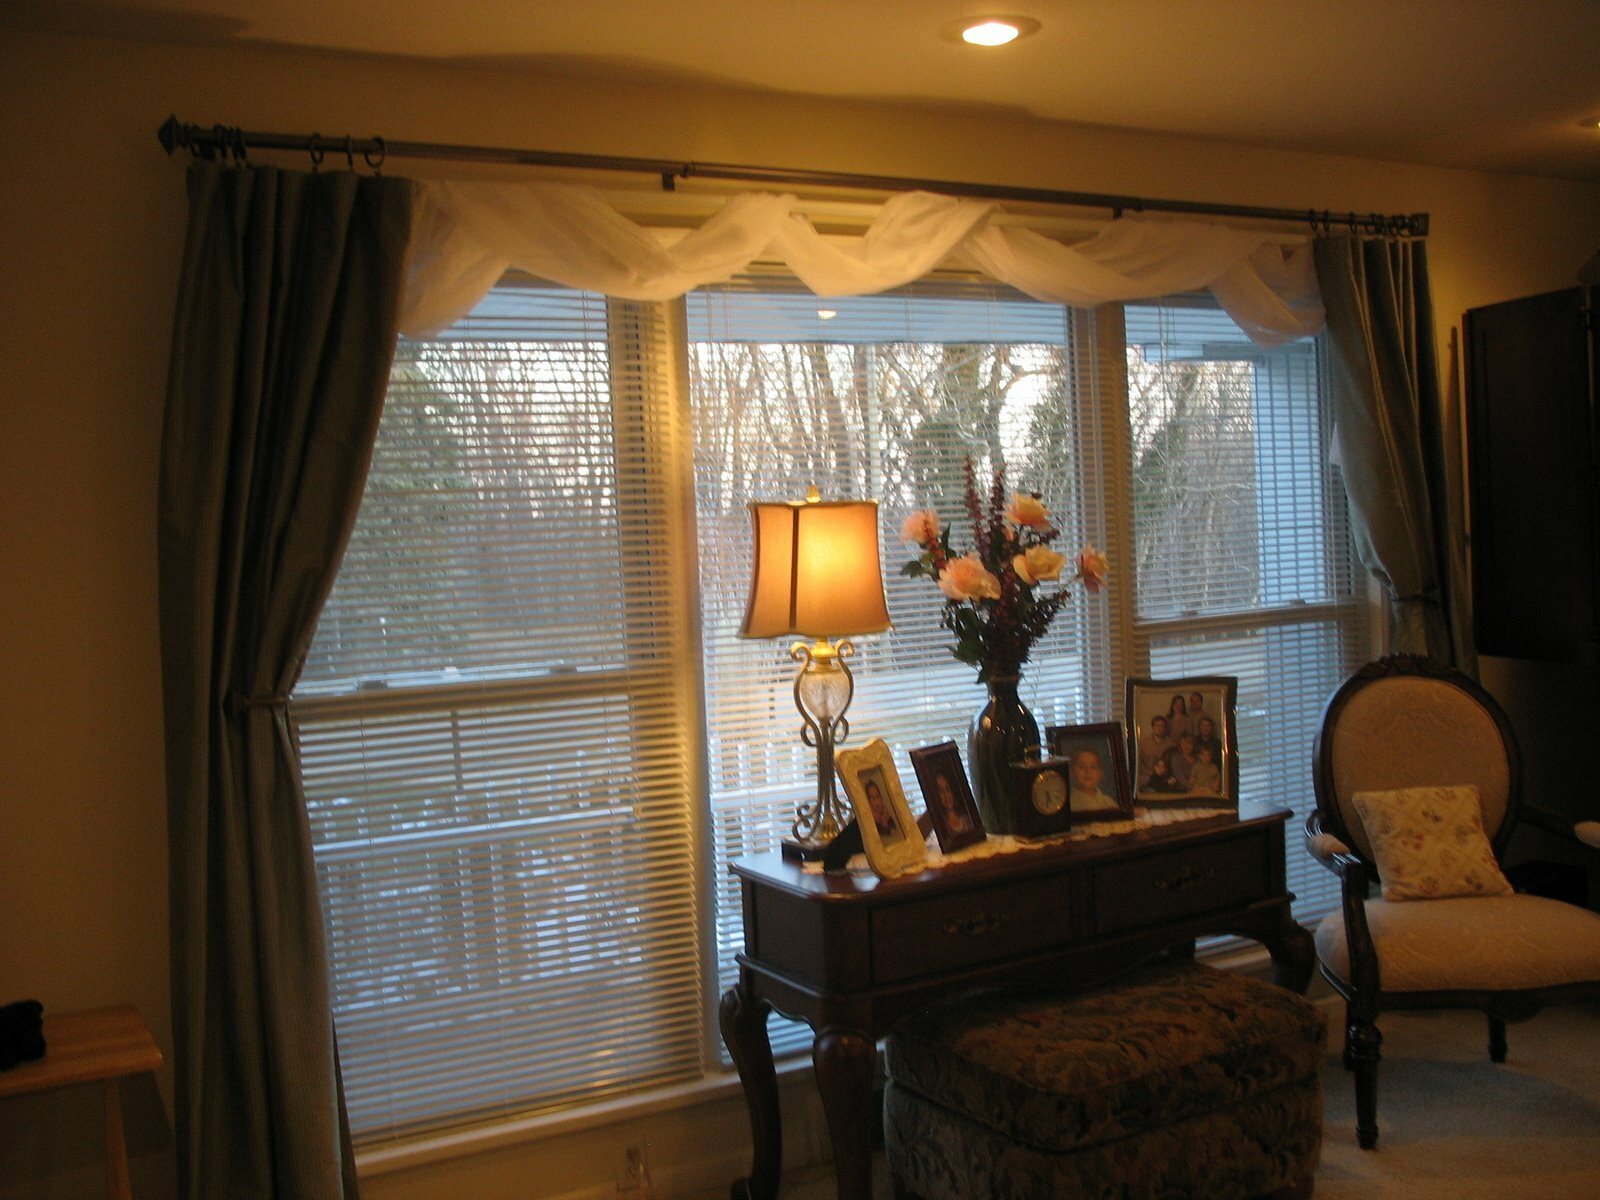 Living Room Valances | Curtain Valances for Bedroom | Valances for Dining Room Windows